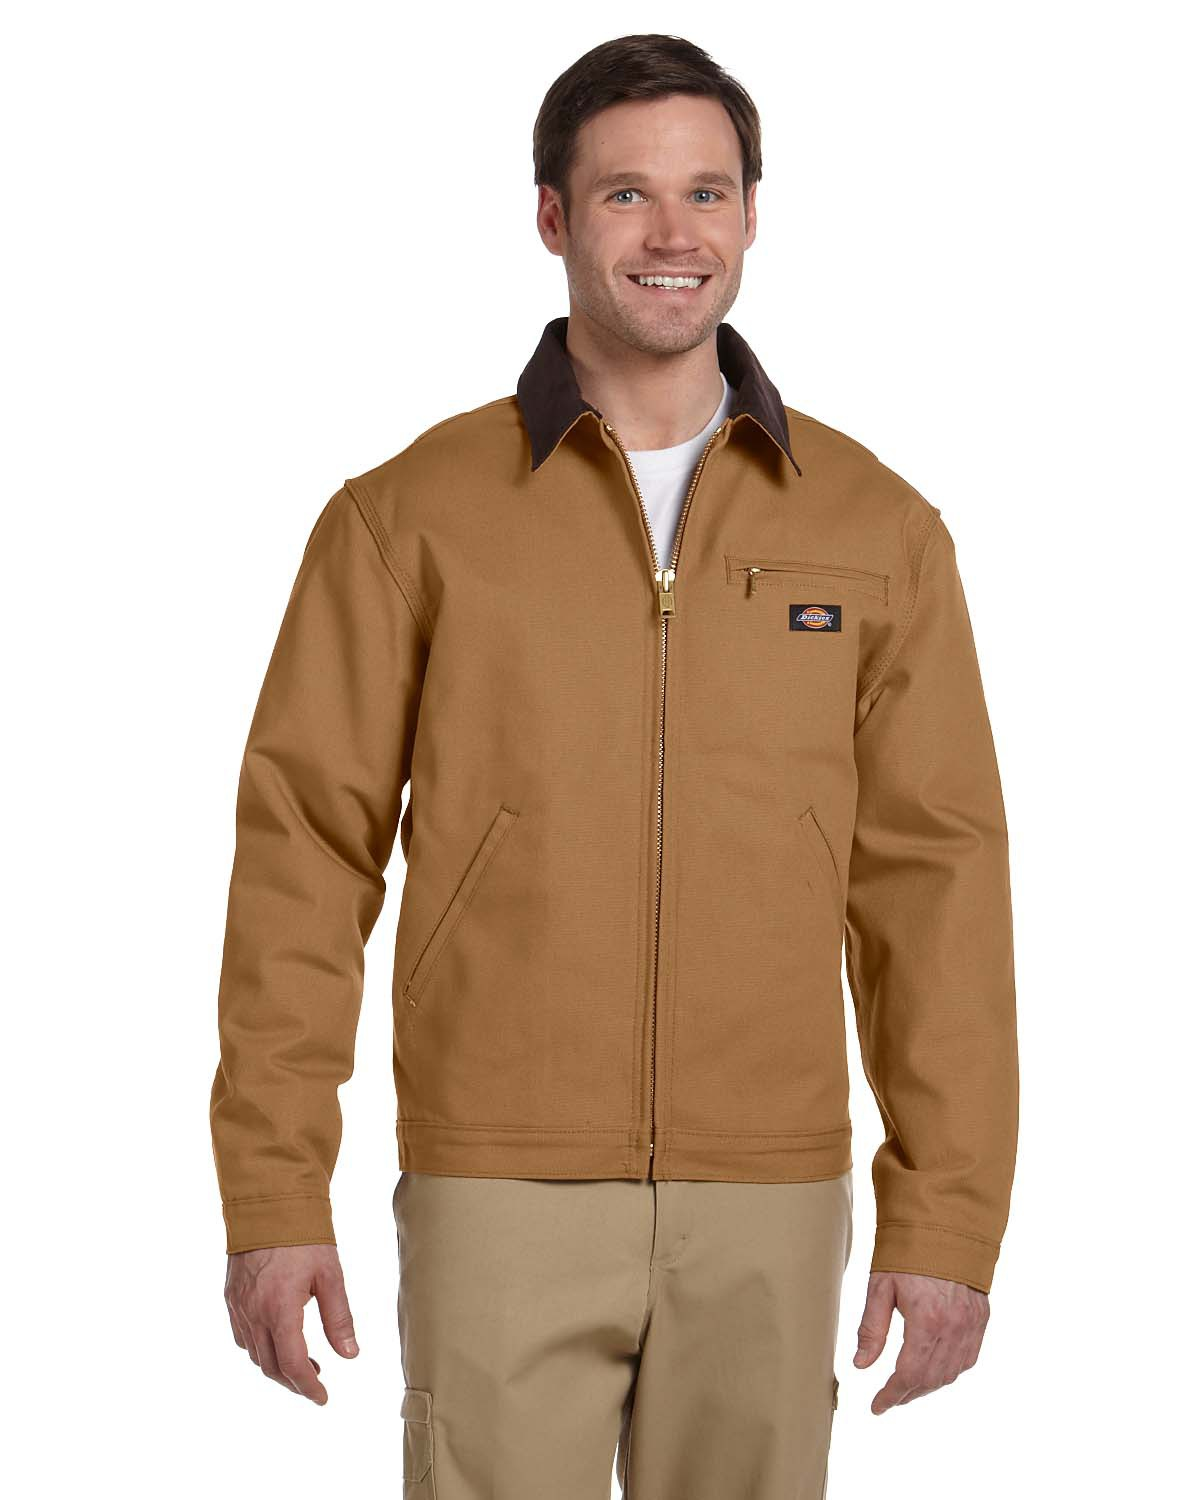 Dickies 758 - Adult Blanket-Lined Duck Jacket